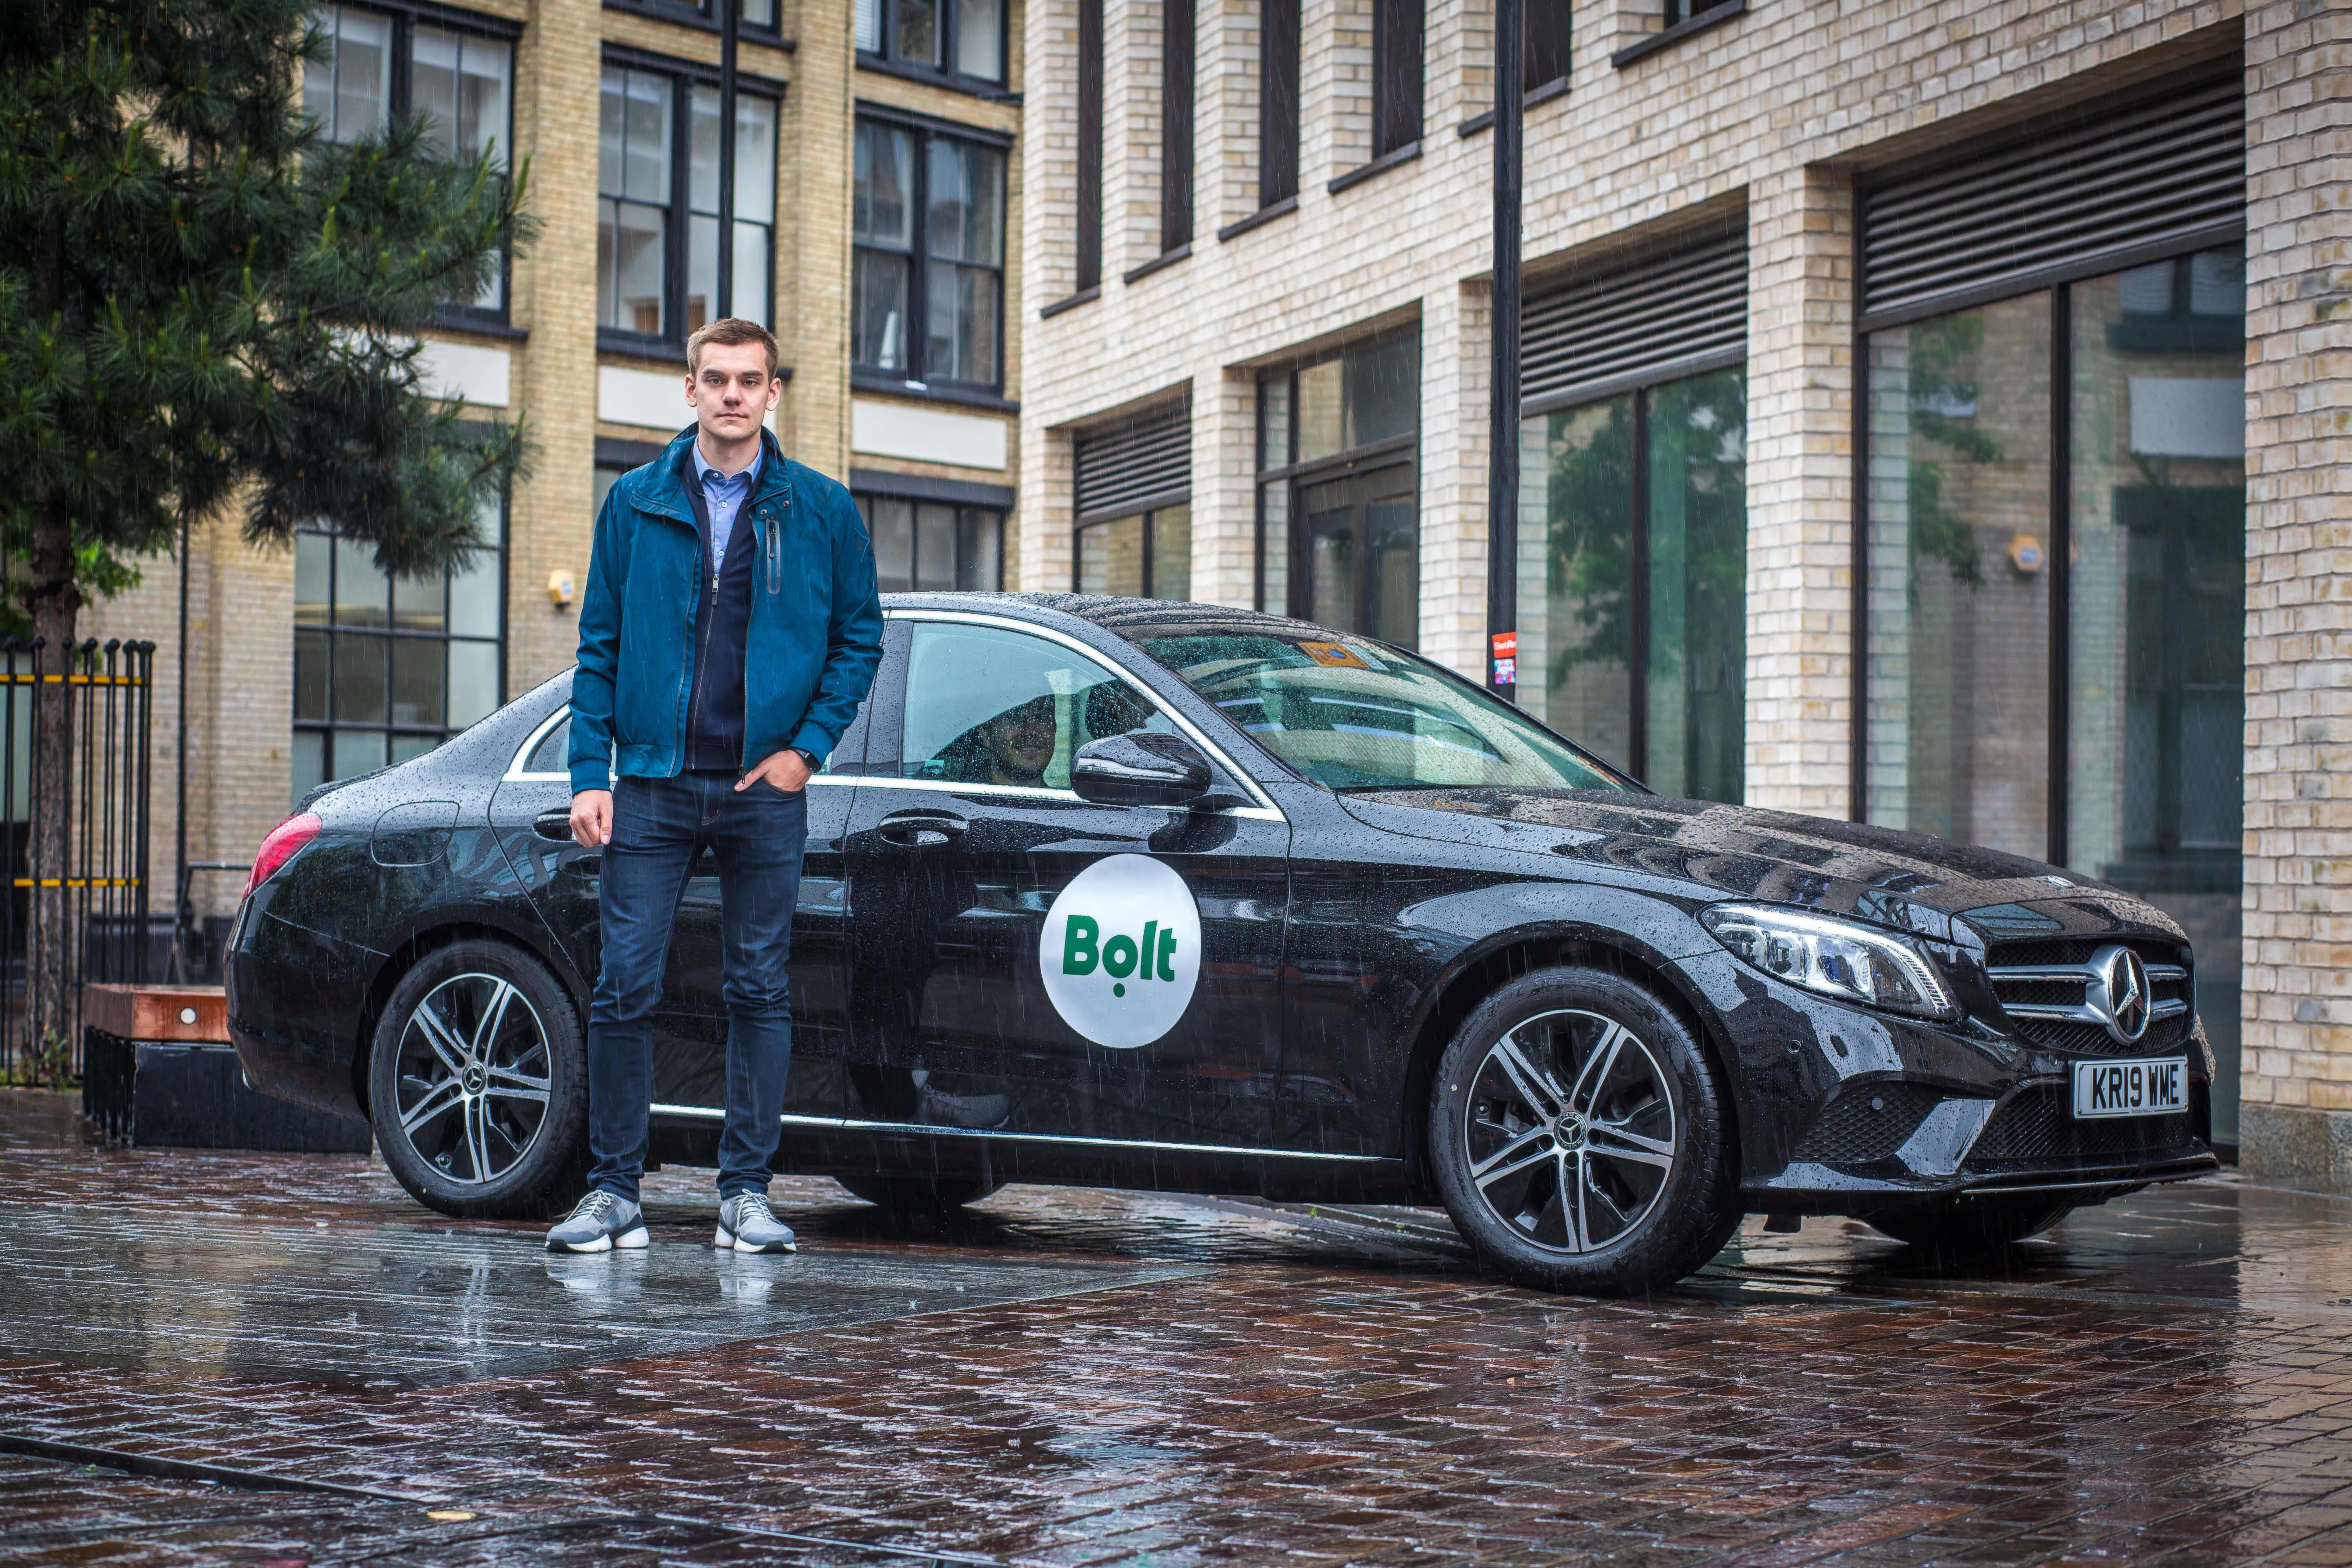 The EU is backing taxi app Bolt to help it compete with Uber